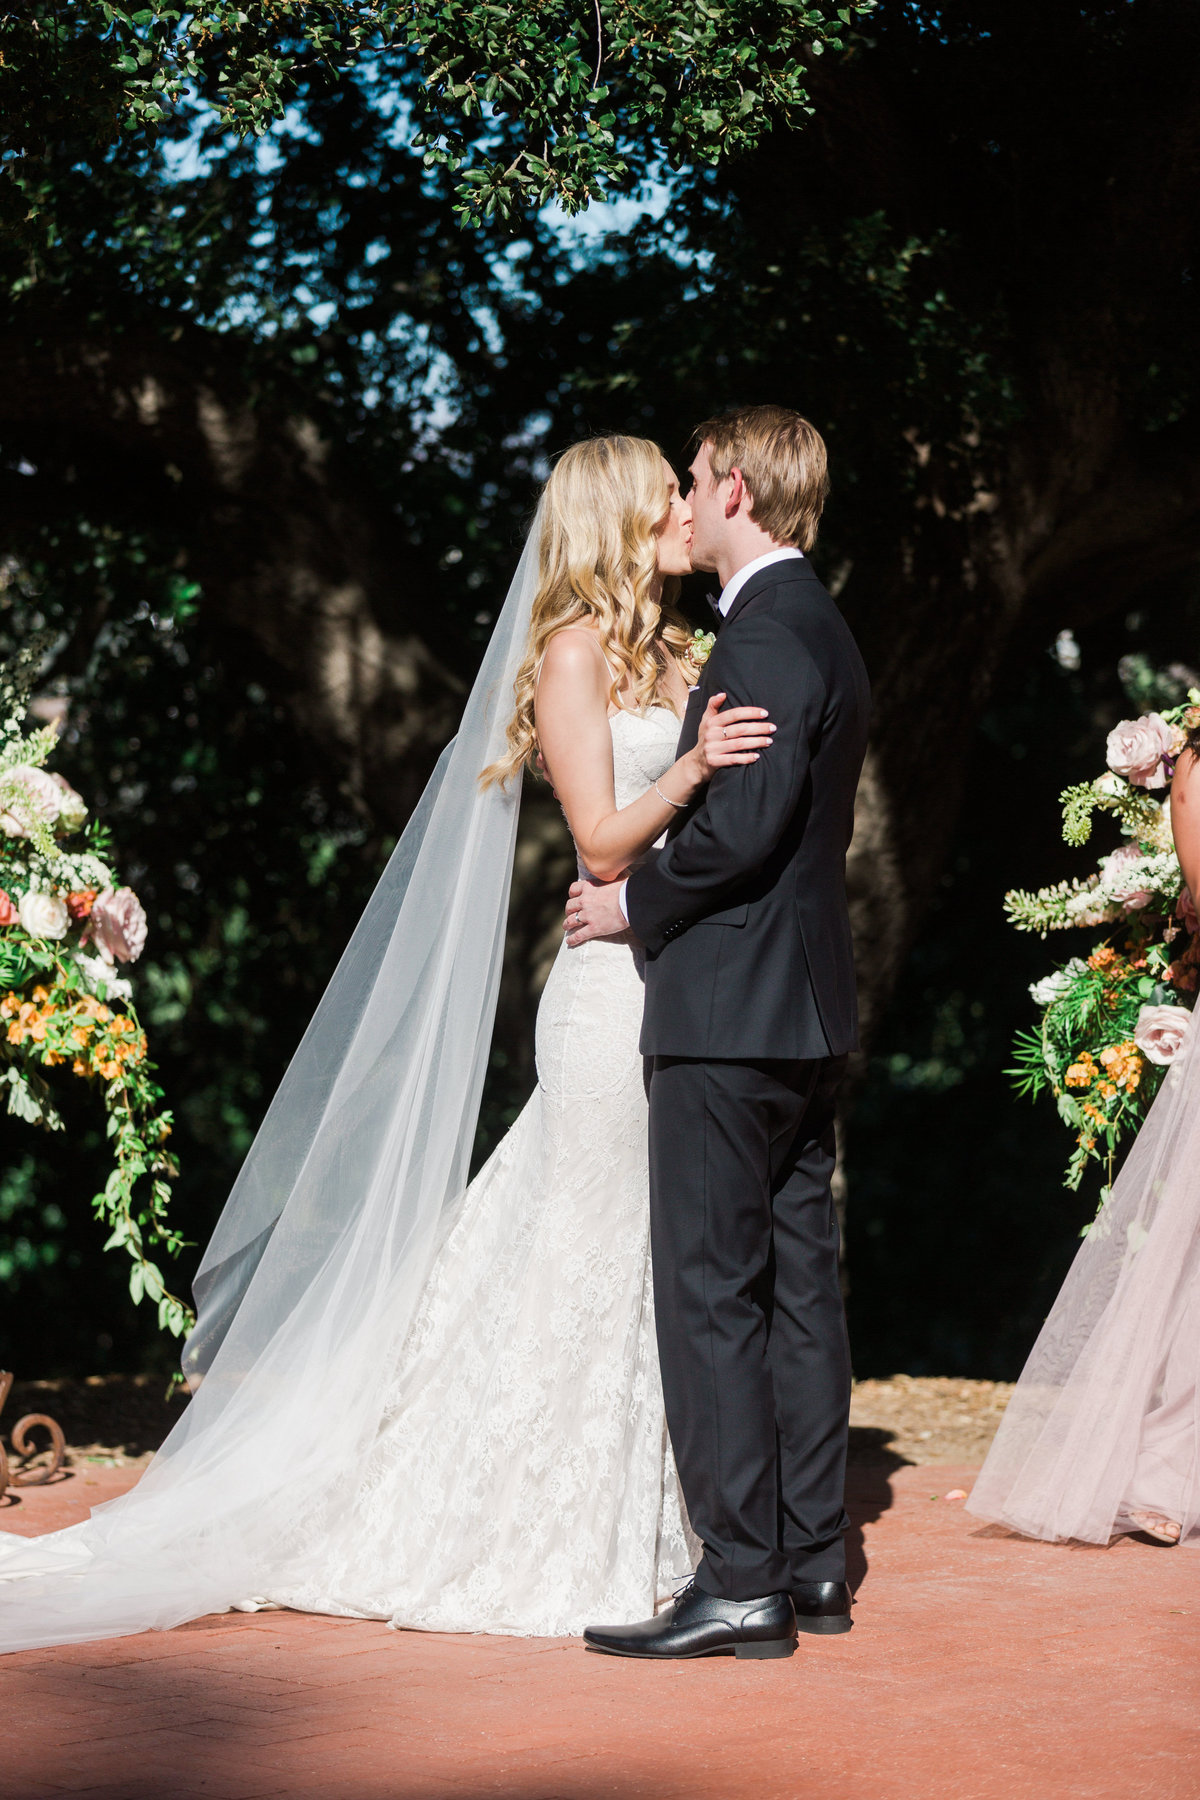 Quail_Ranch_Blush_California_Wedding_Valorie_Darling_Photography - 92 of 151